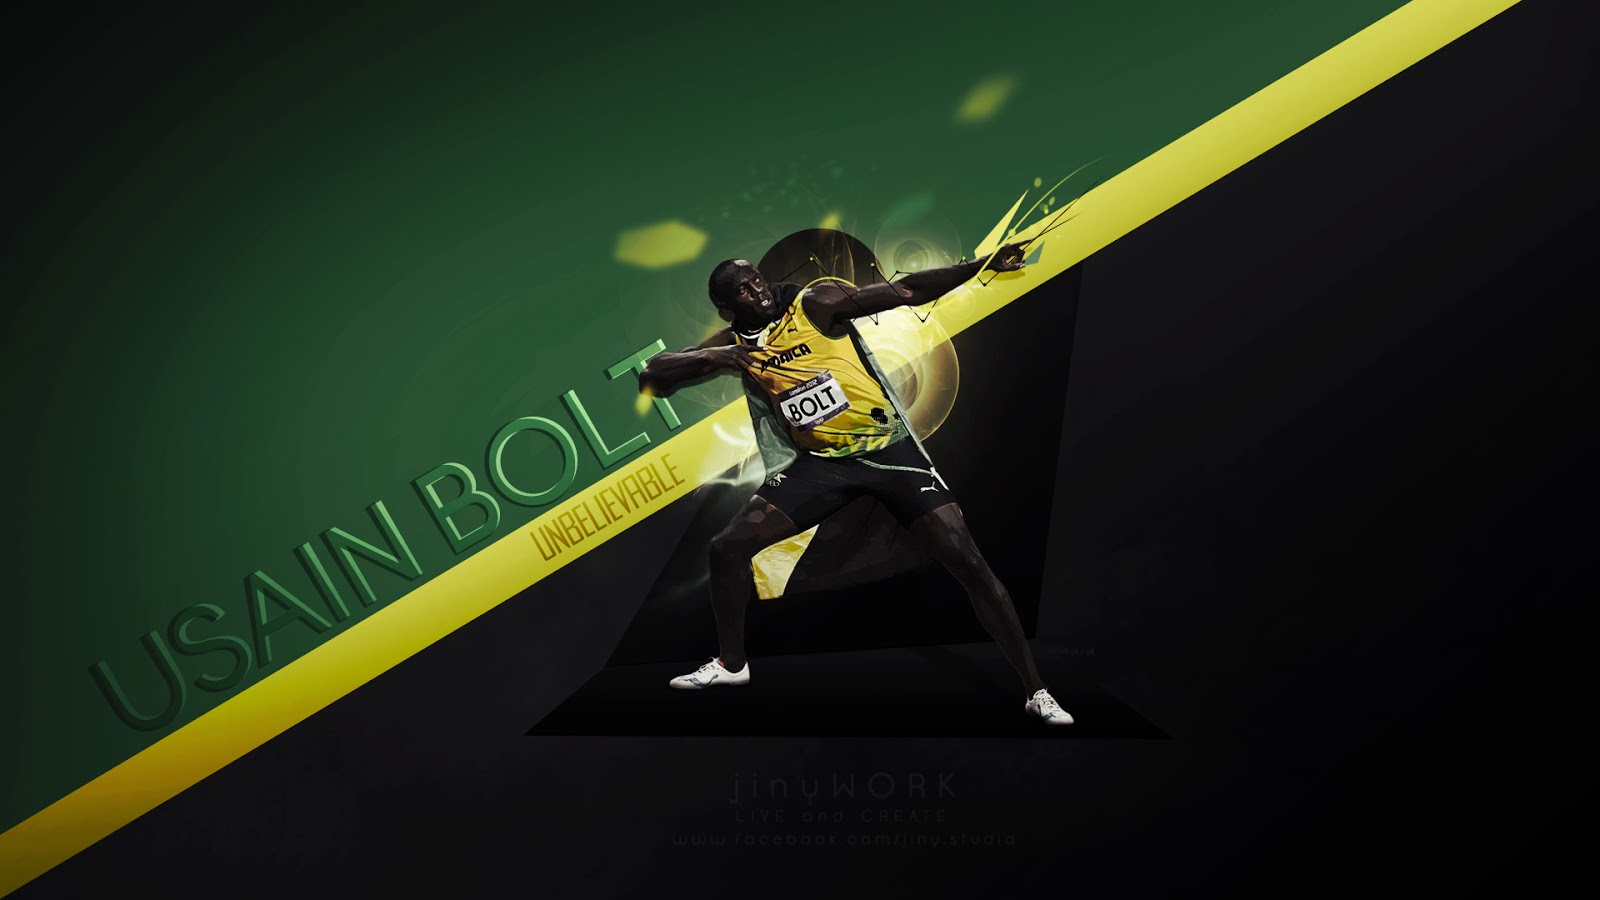 Bohemia Quotes Wallpaper Words Celebrities Wallpapers Usain Bolt Latest Hd